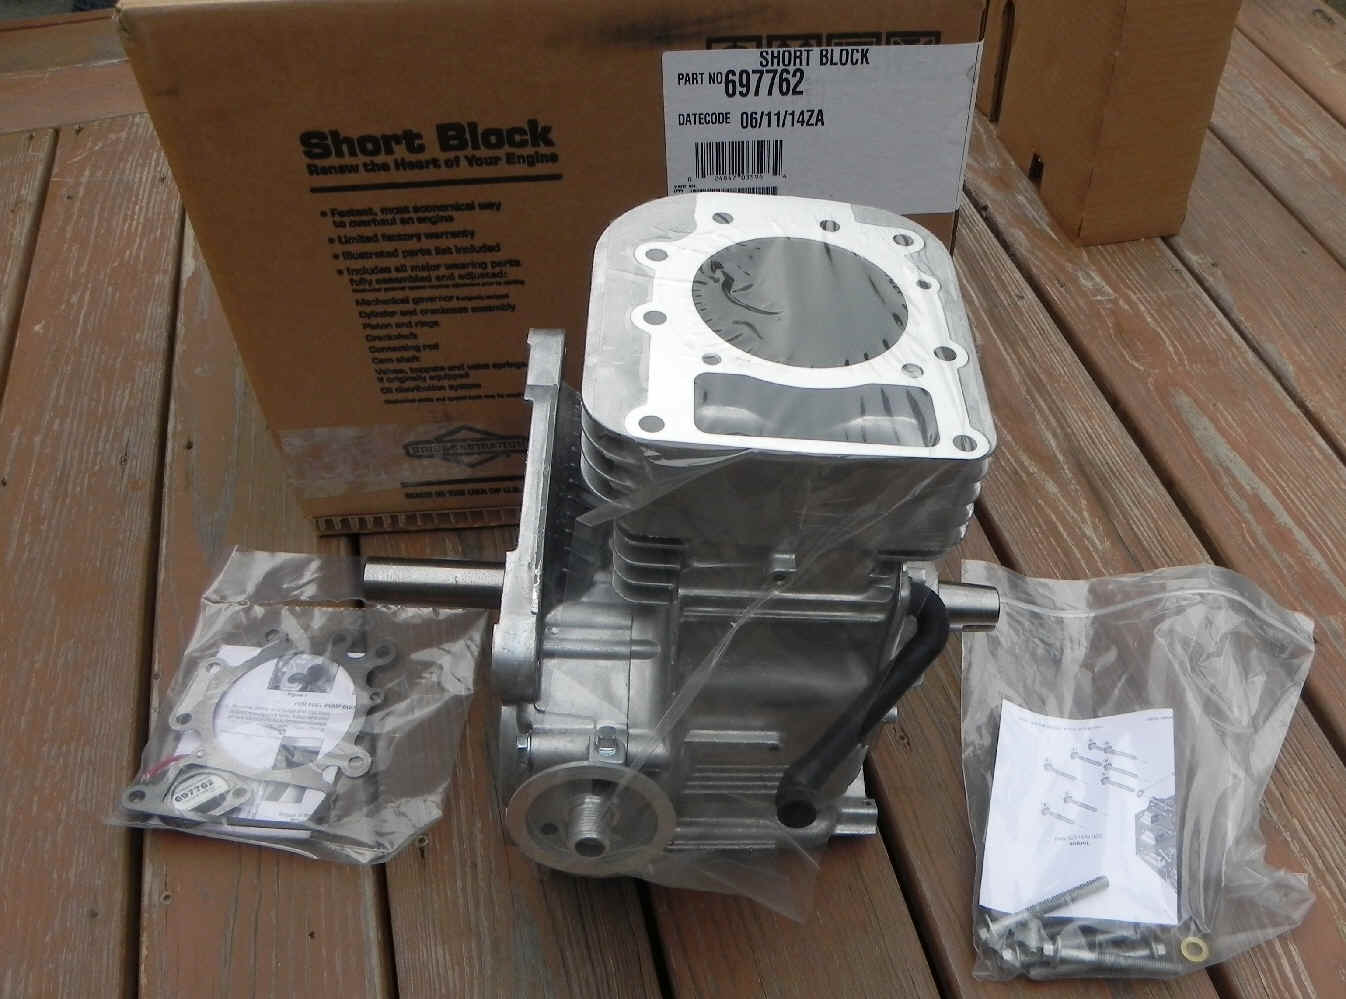 Briggs & Stratton Short Block - Part No. 592060A